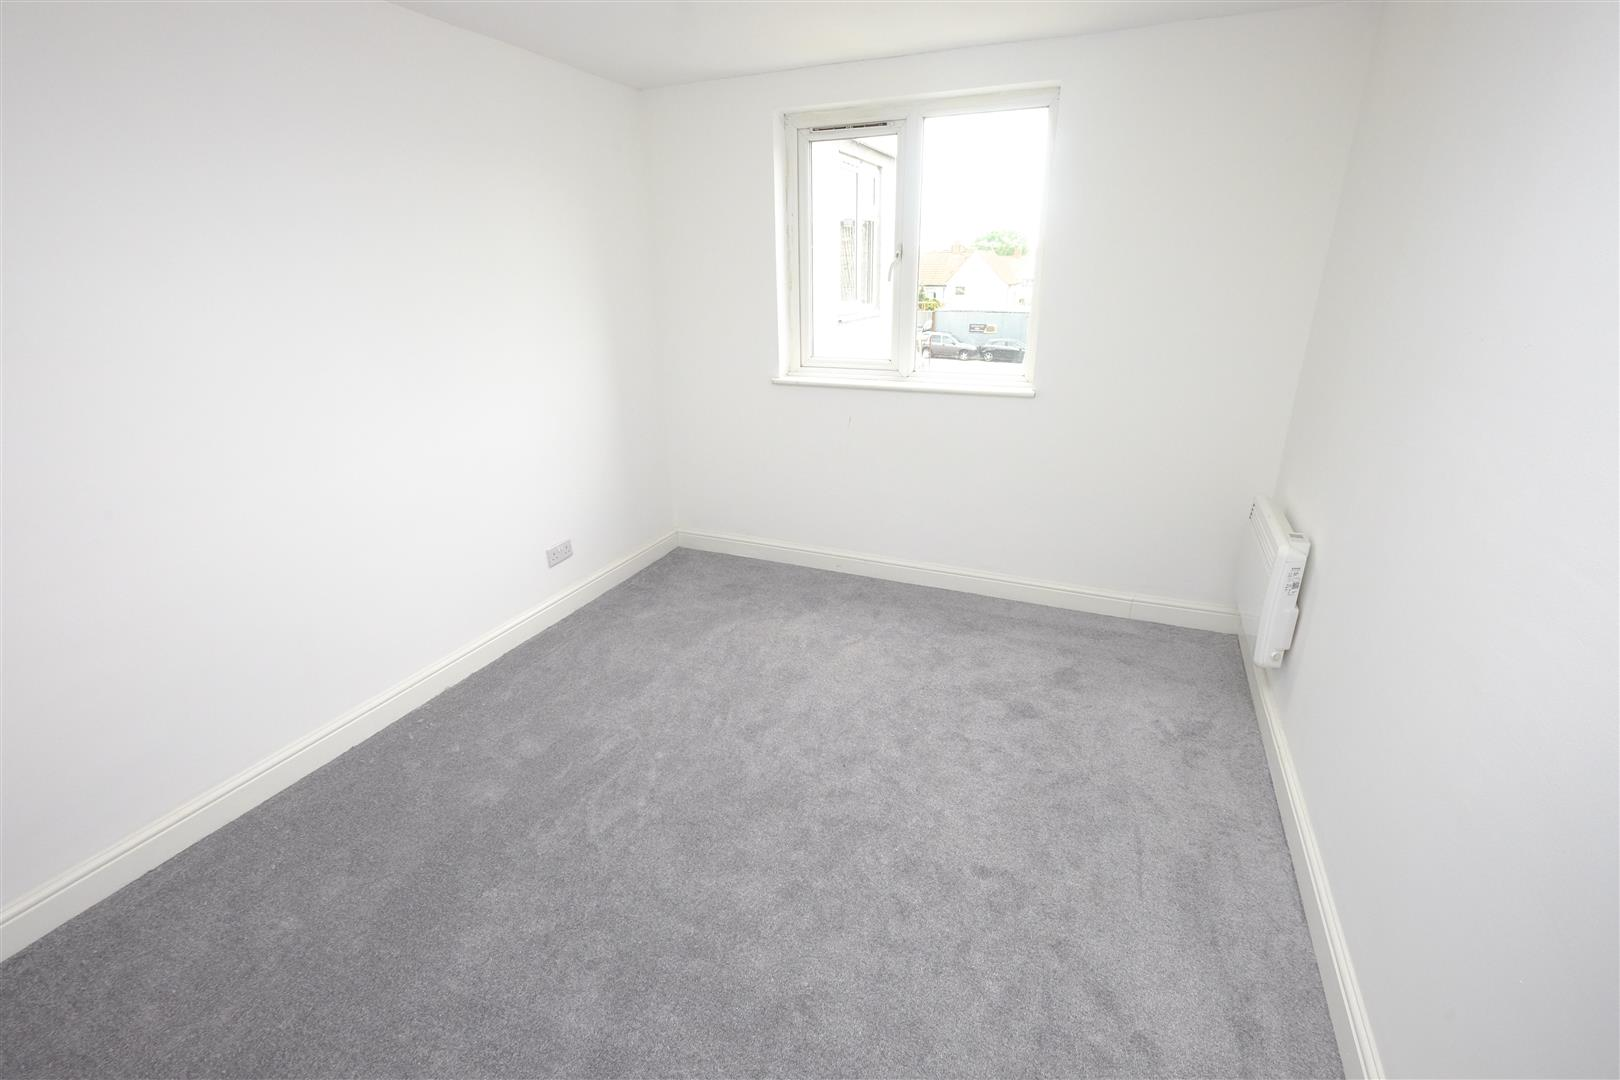 Images for RENOVATED FLAT CLOSE TO HOSPITAL EAID:hollismoapi BID:11